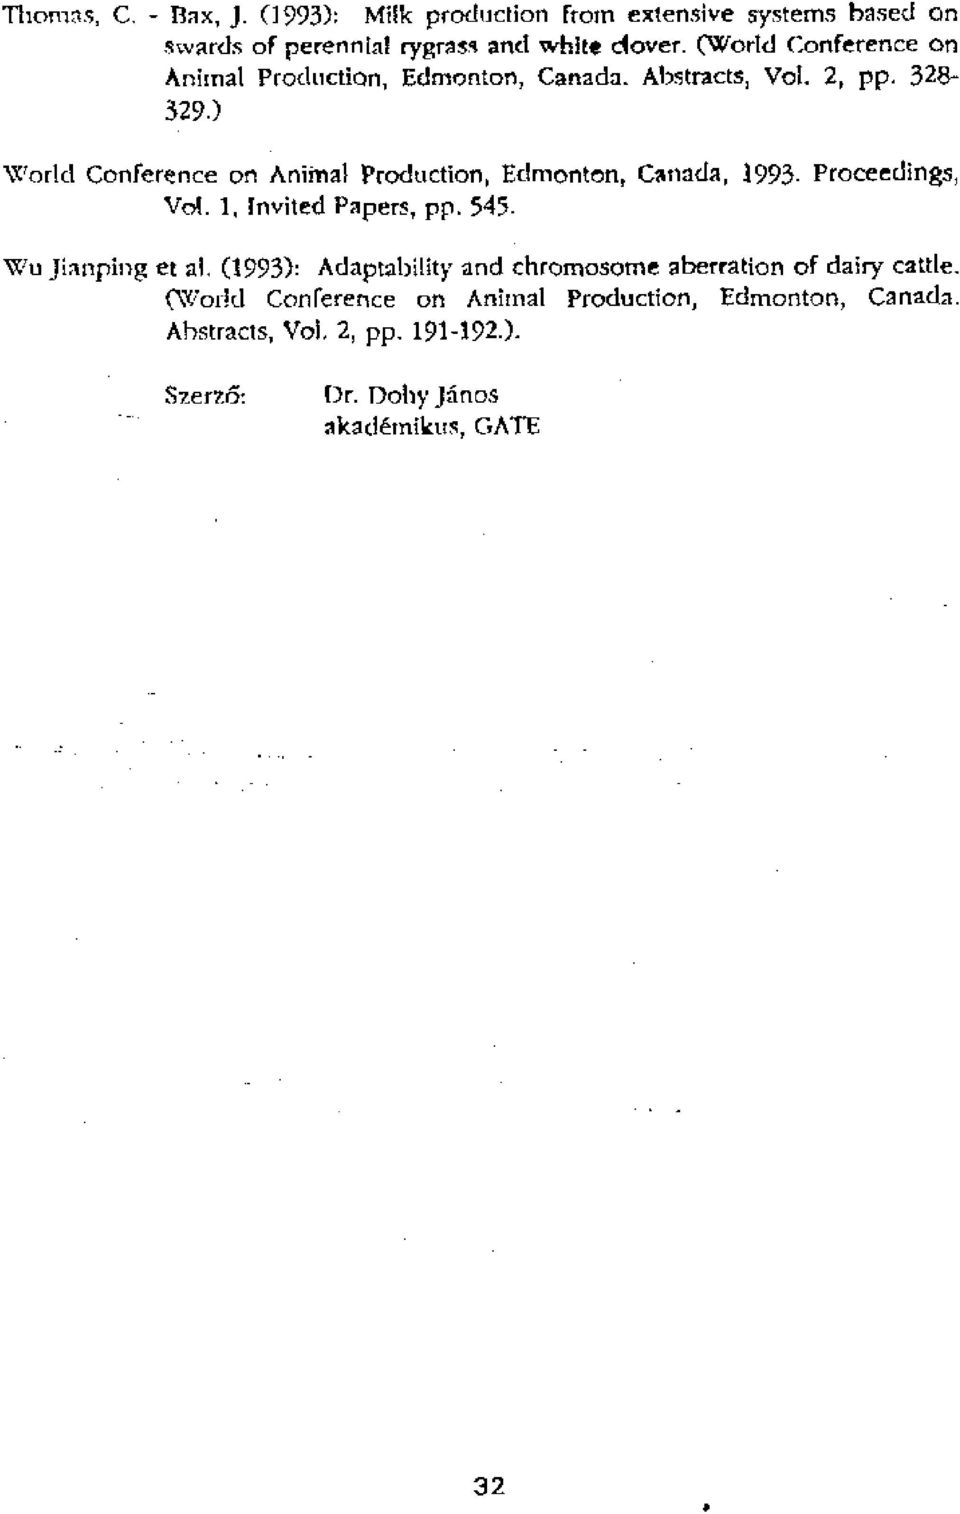 ) World Conference on Aniinal Production, Edmonton, Canada, 1993. Proceedings, Vol. 1, invited Papers, pp. 545.